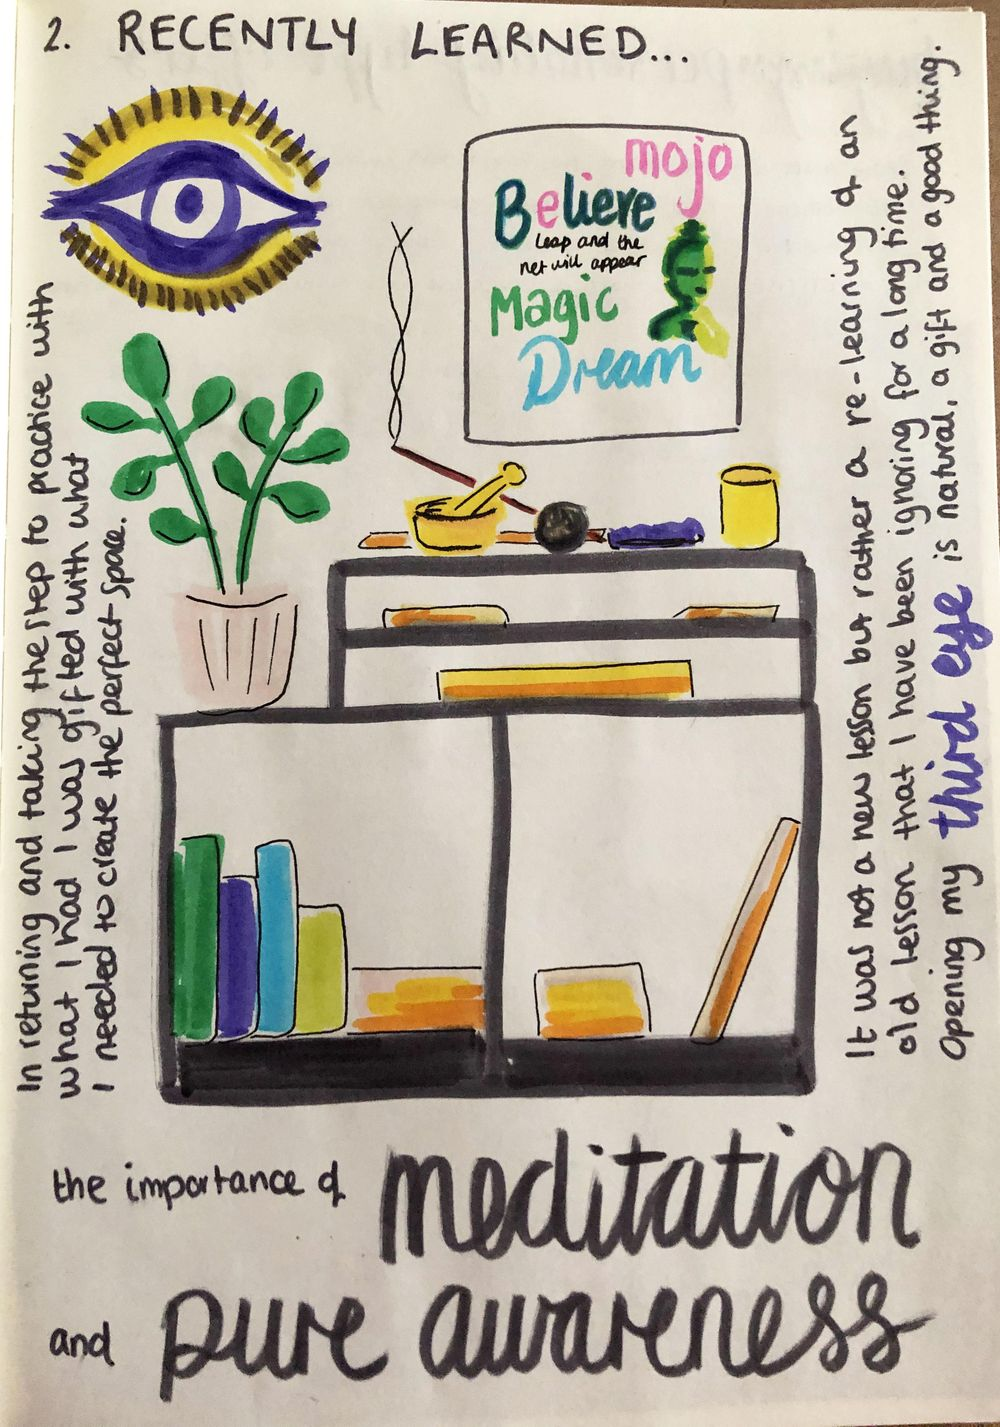 Daily Illustrated Journaling Prompts - image 13 - student project